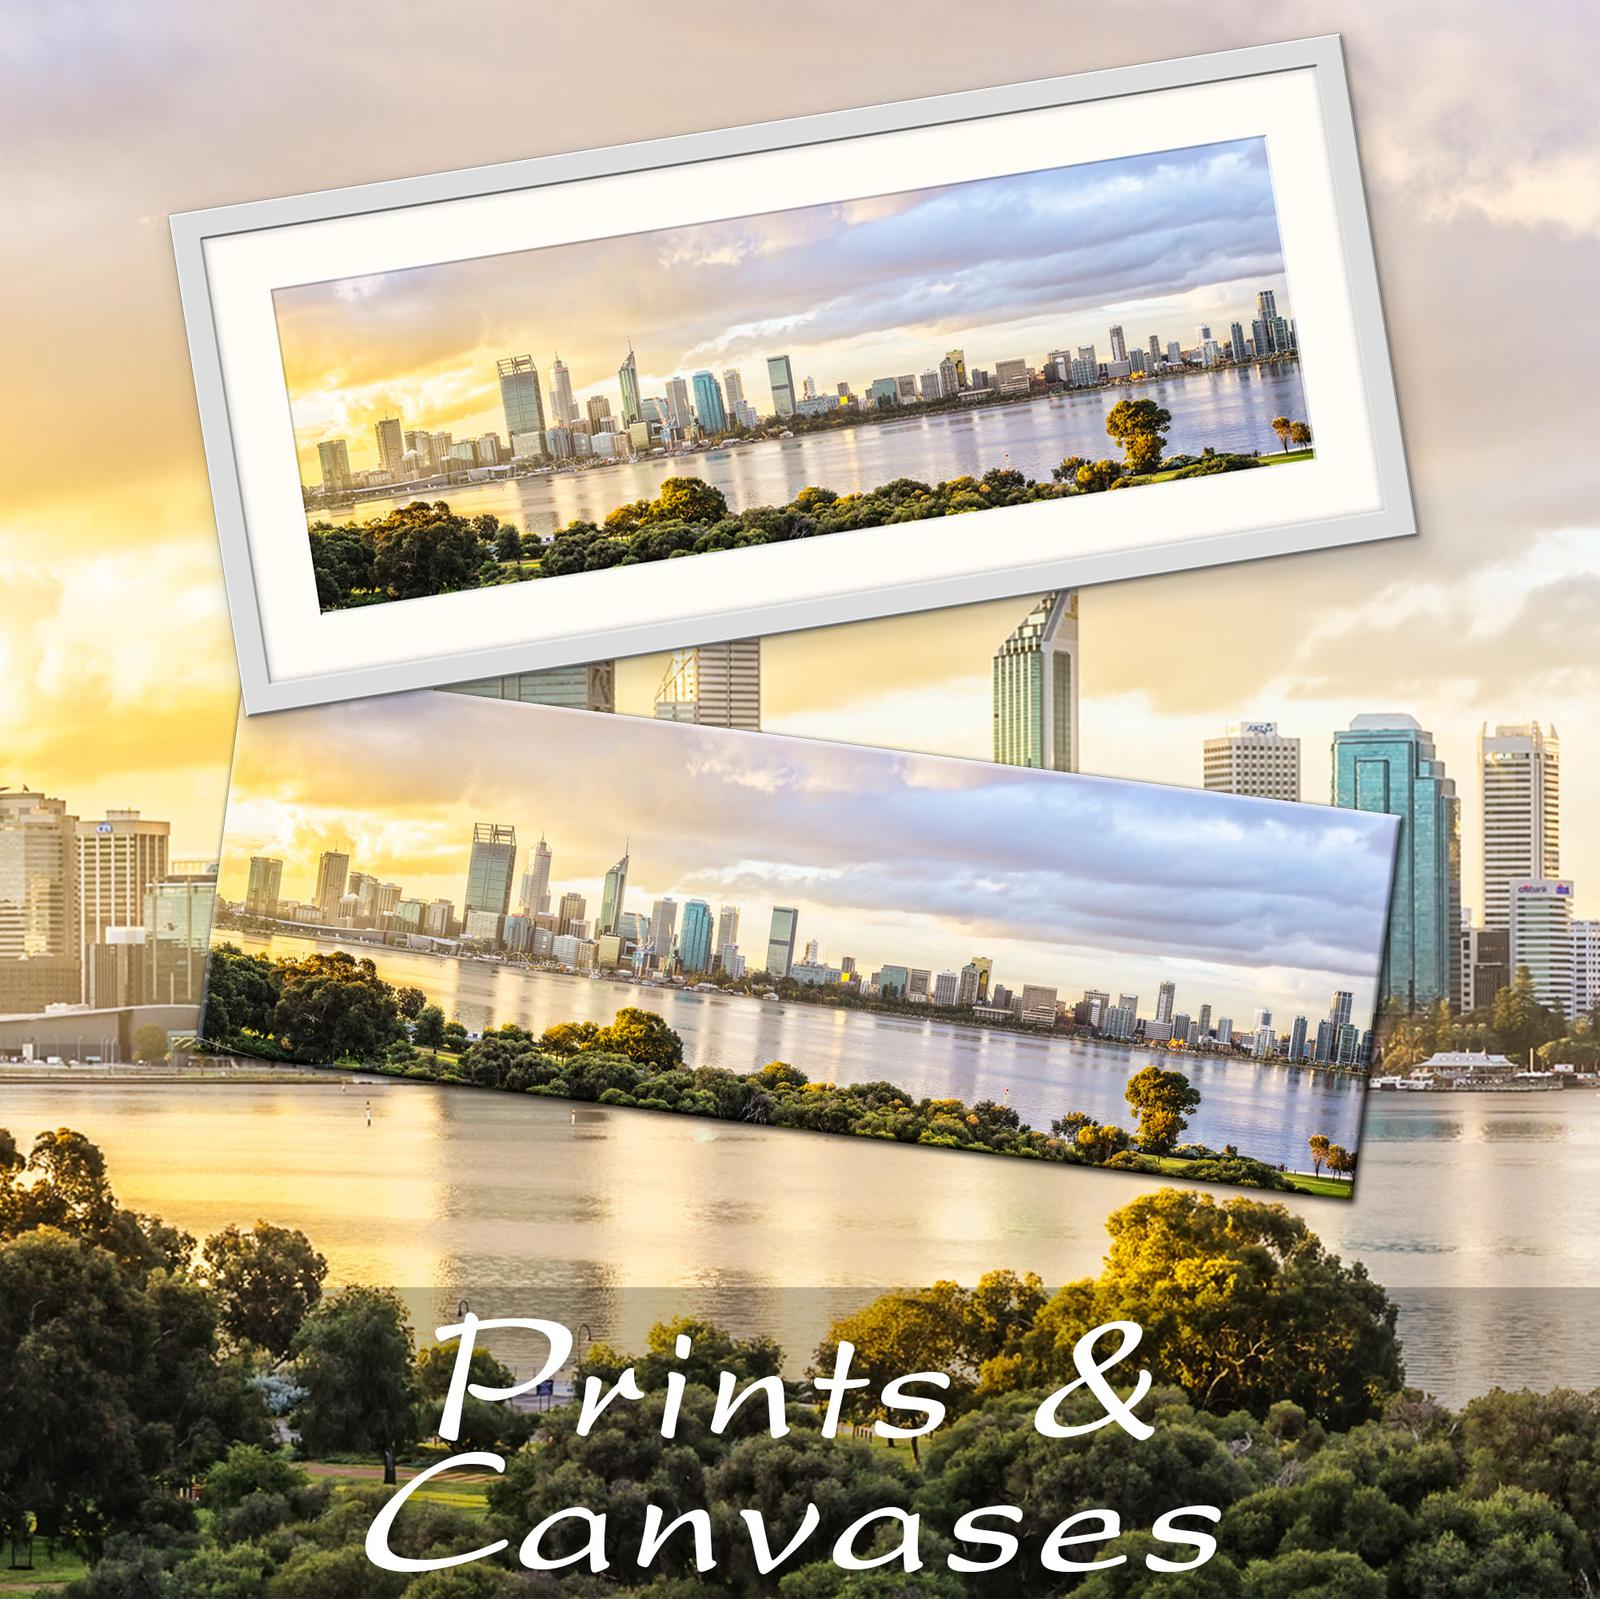 Prints and Canvases of Western Australia